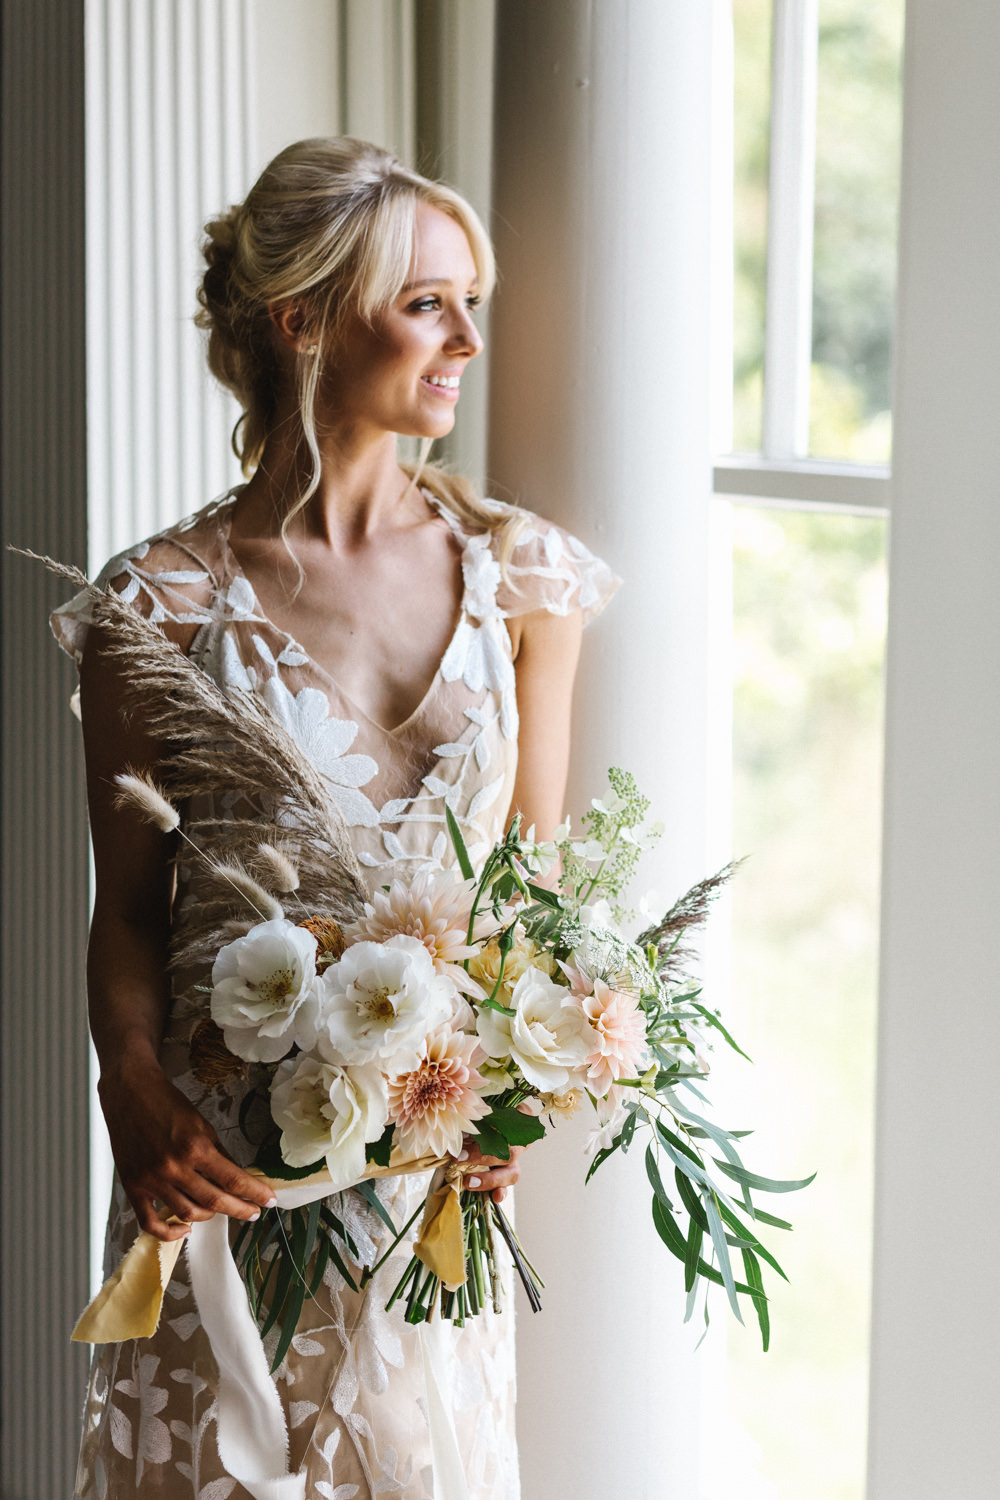 Dress Gown Bride Bridal Willowby Opaque Embroided Nude Boconnoc Wedding Debs Alexander Photography